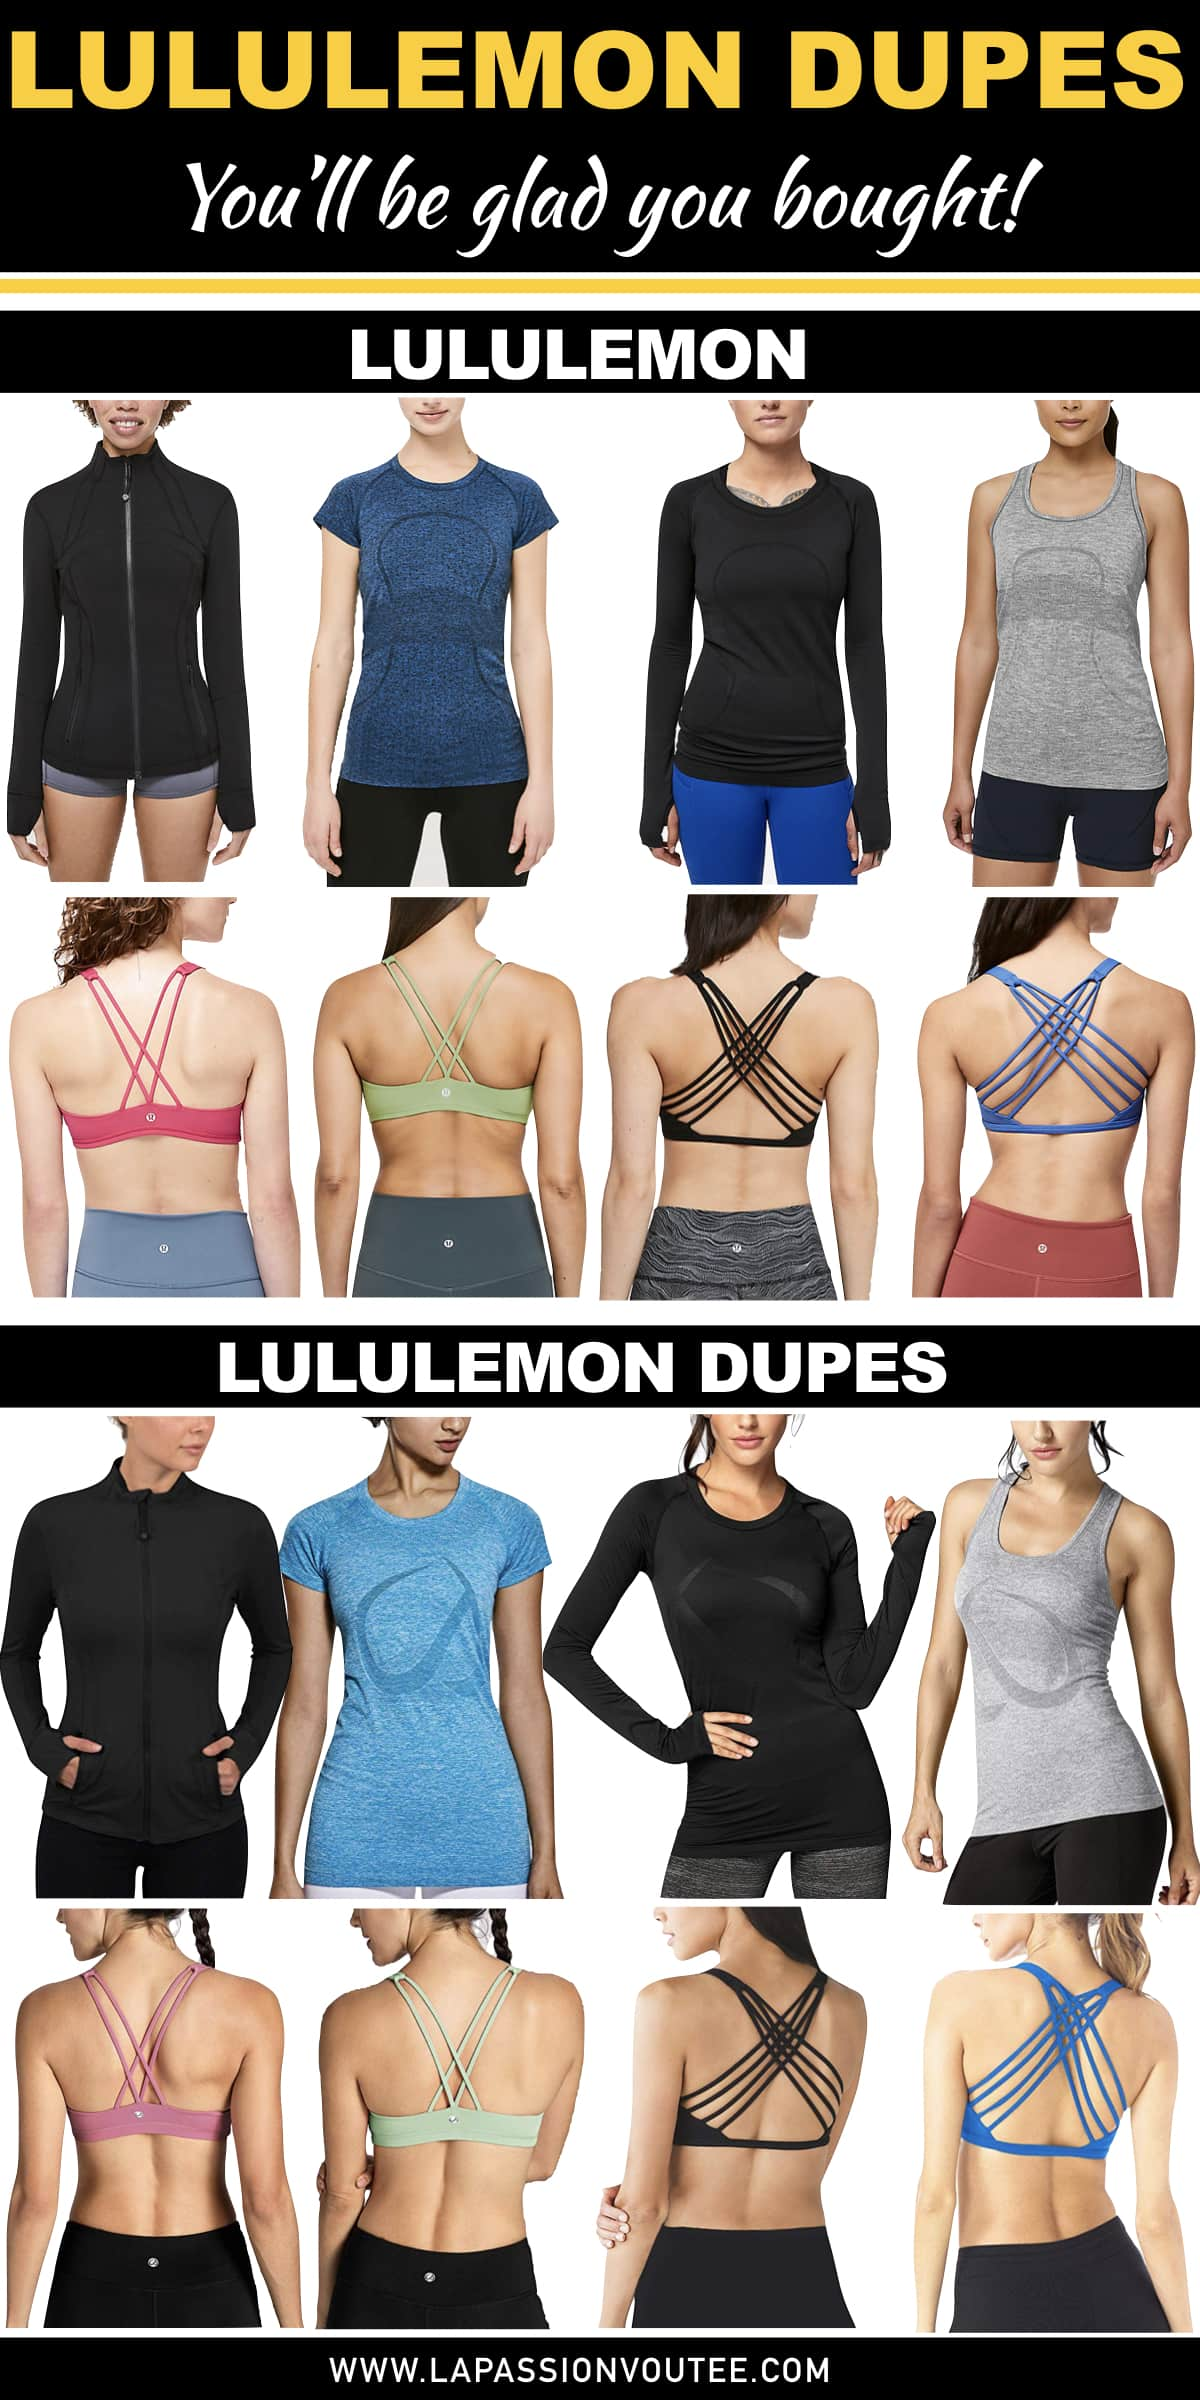 Love Lululemon but not ready to part ways with so much money? These are the best Lululemon dupes on Amazon that'll save you serious money. #lululemon #dupes #athleticwear